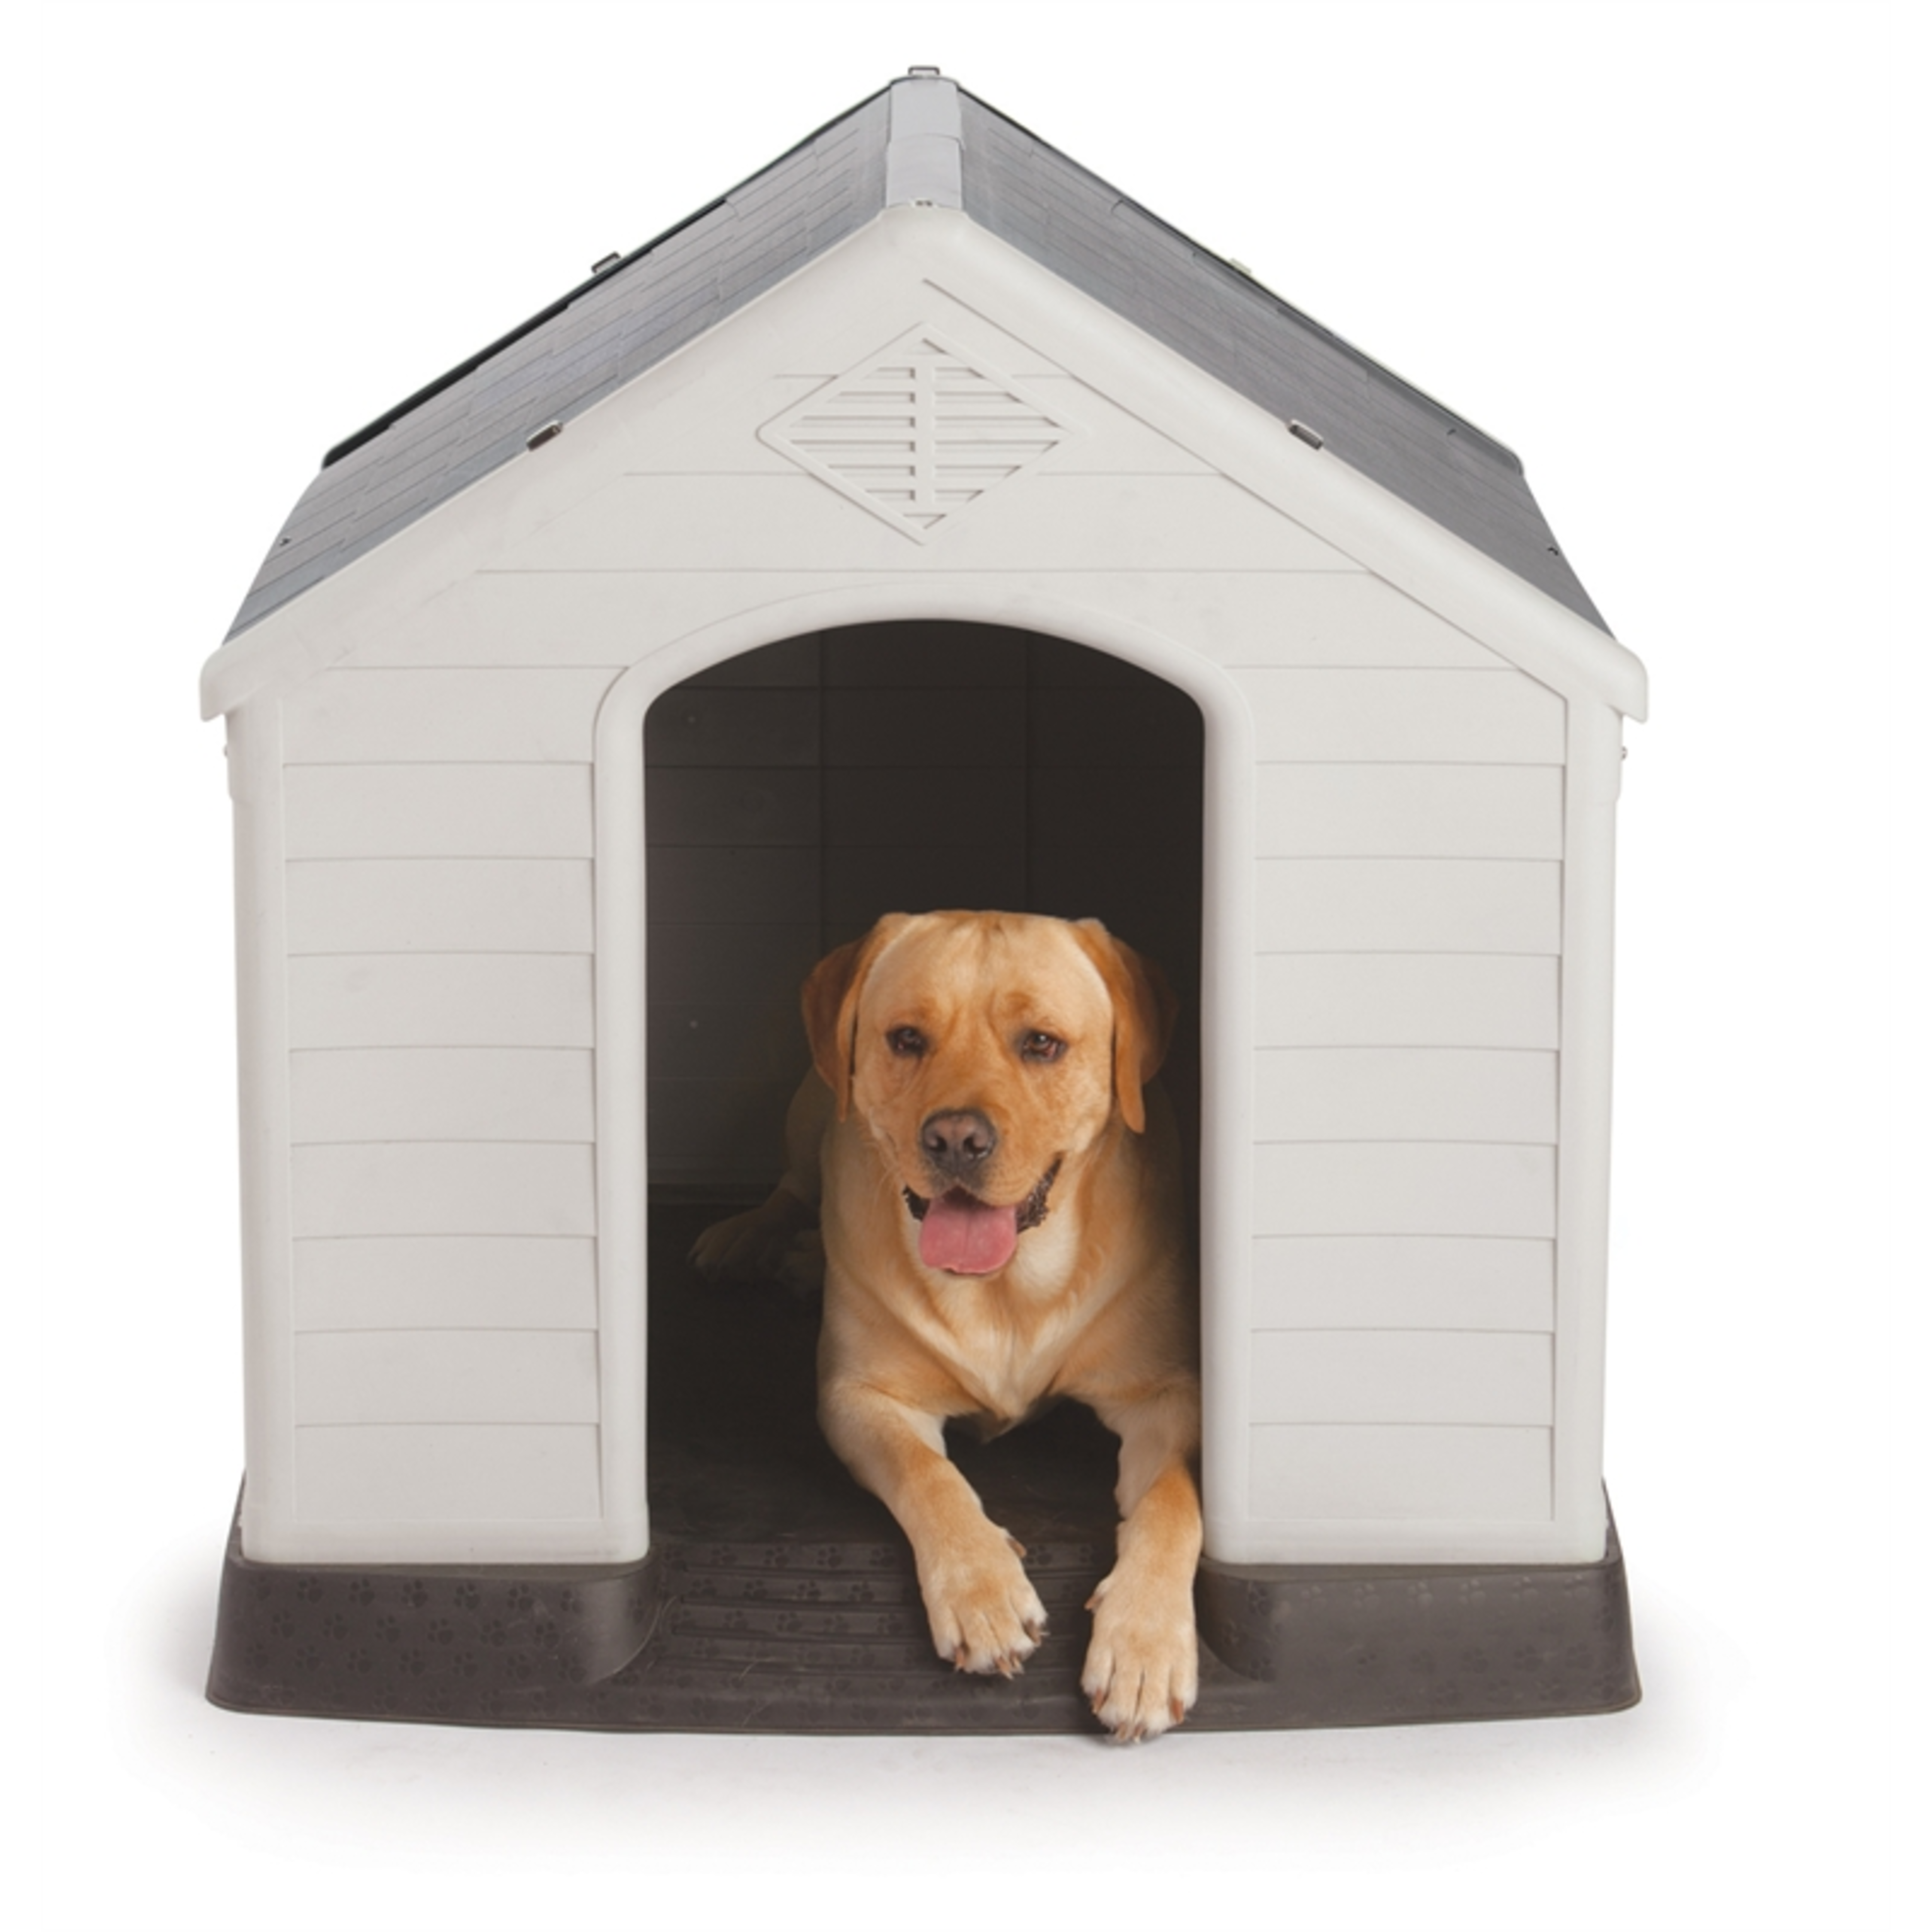 Large dog in plastic kennel